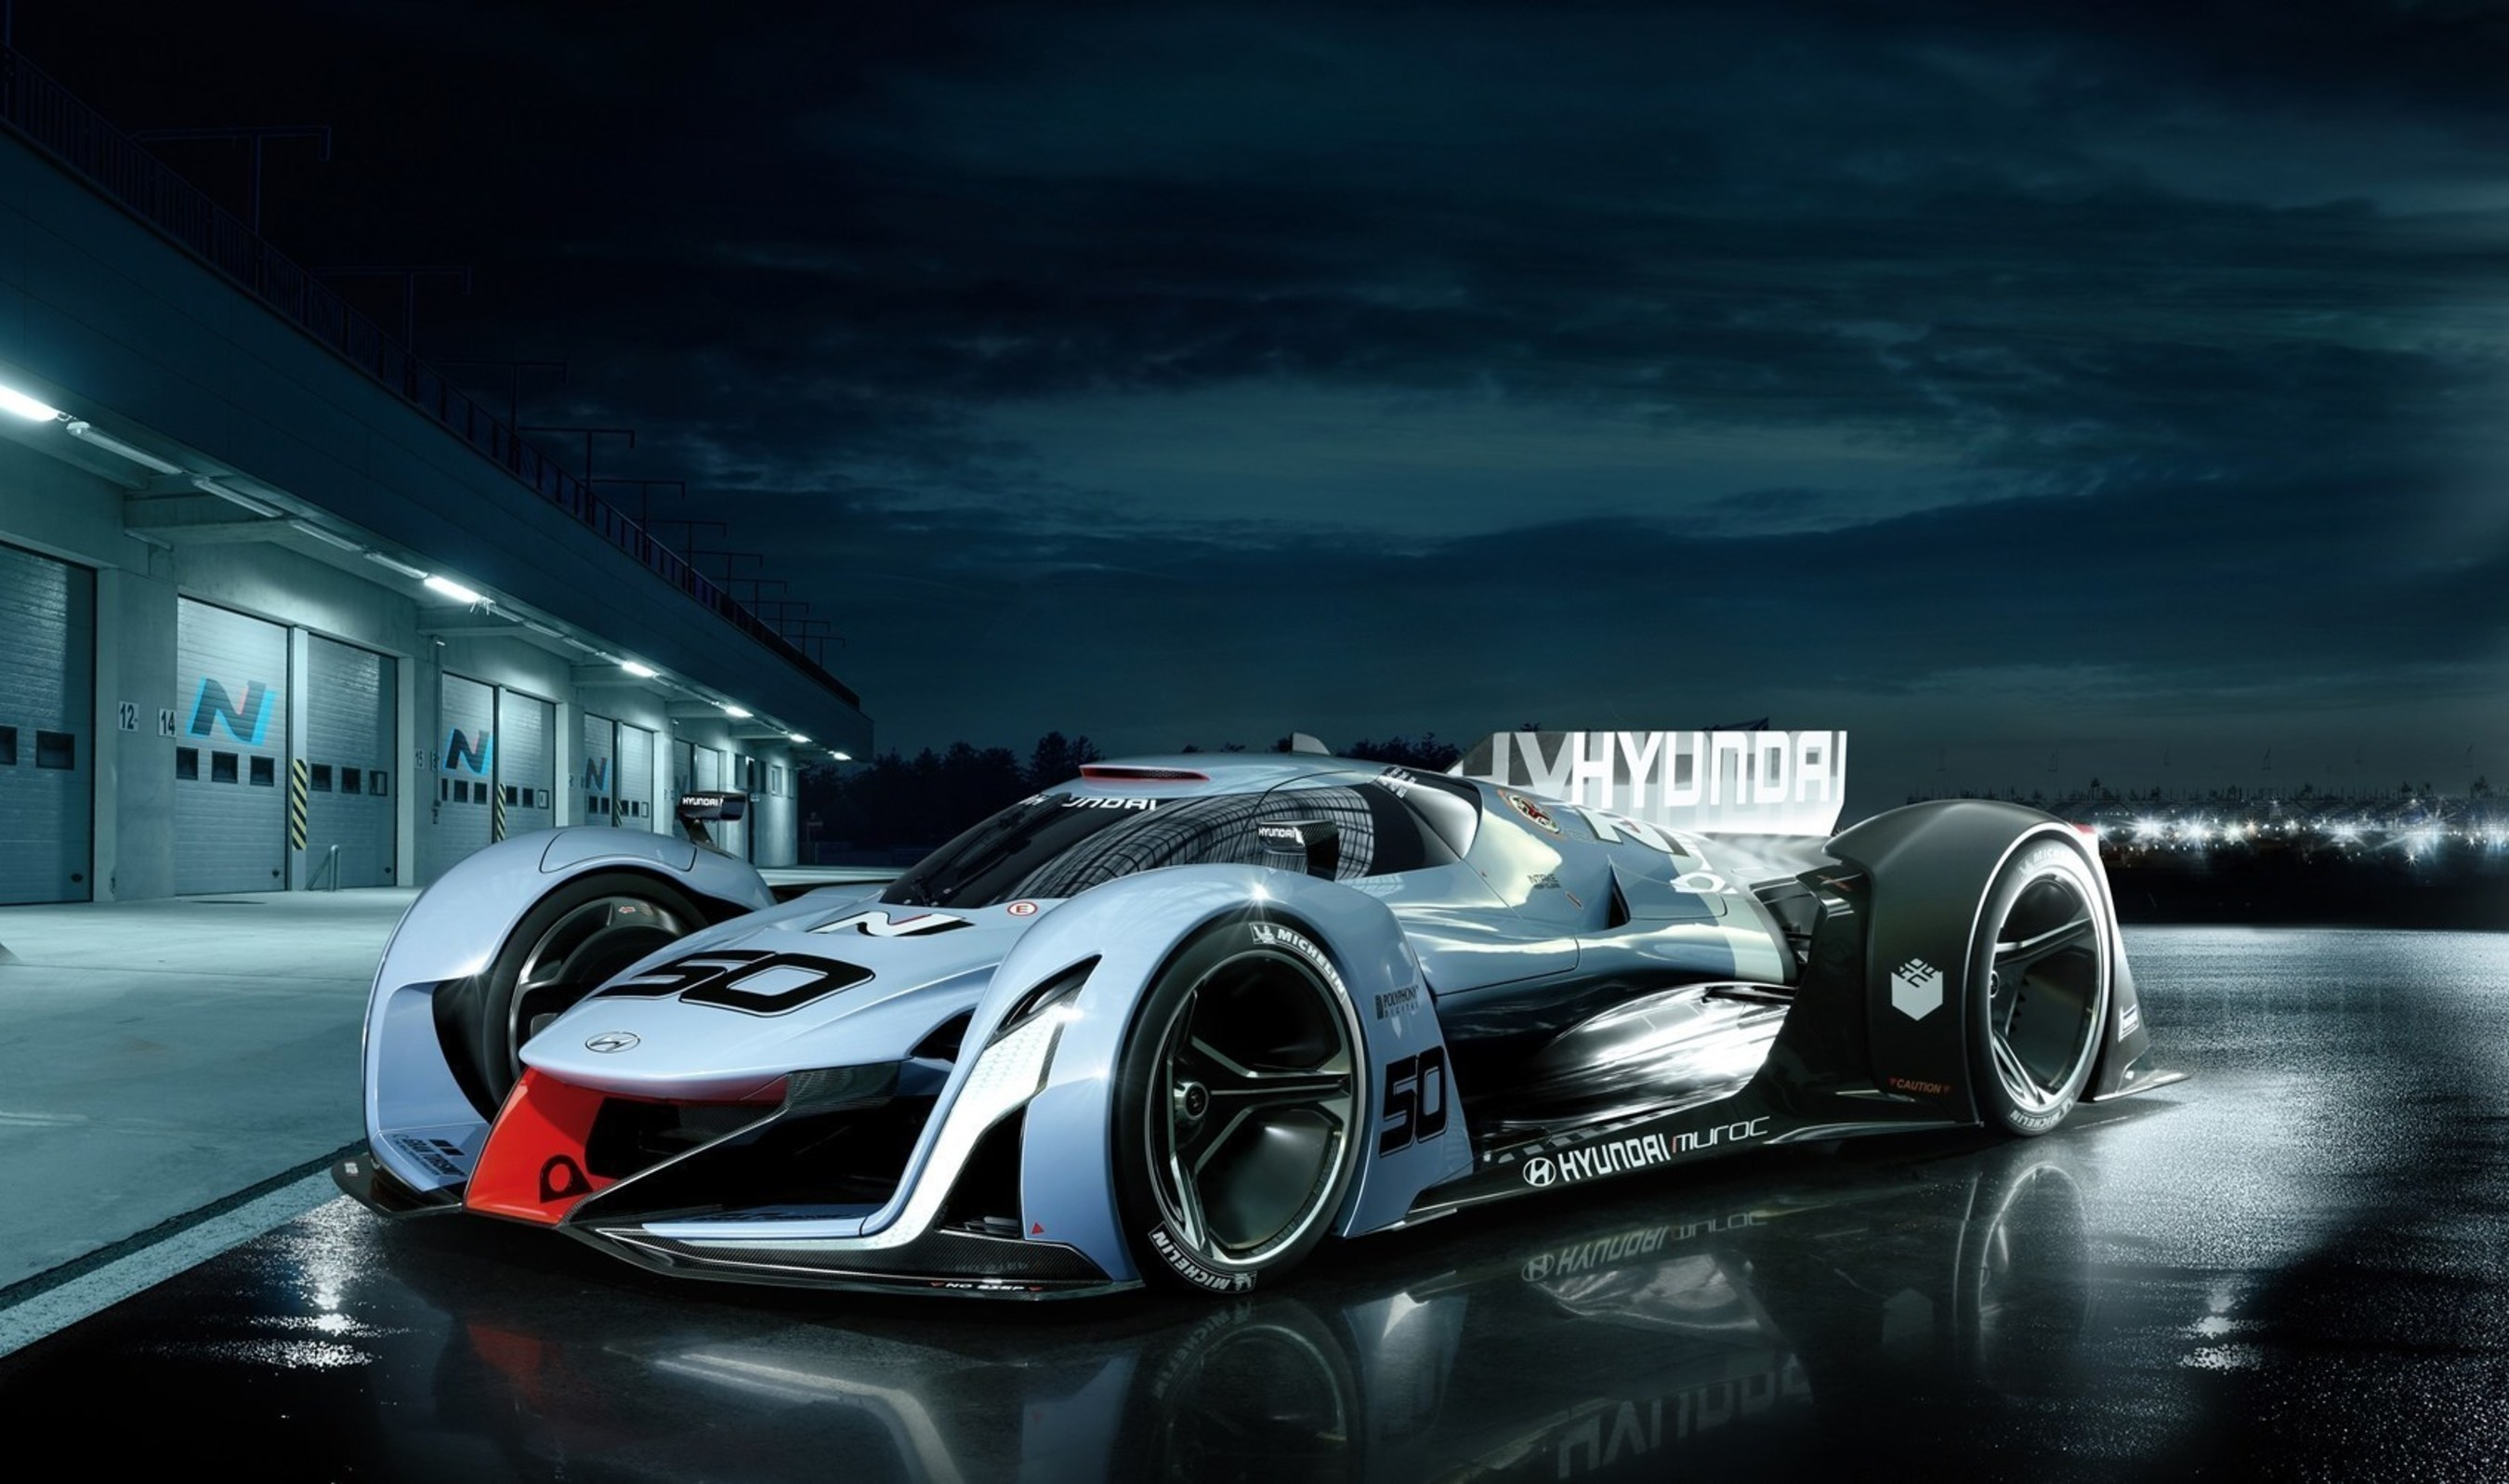 Hyundai N 2025 Vision Gran Turismo Concept To Have North American Debut At Los Angeles Auto Show